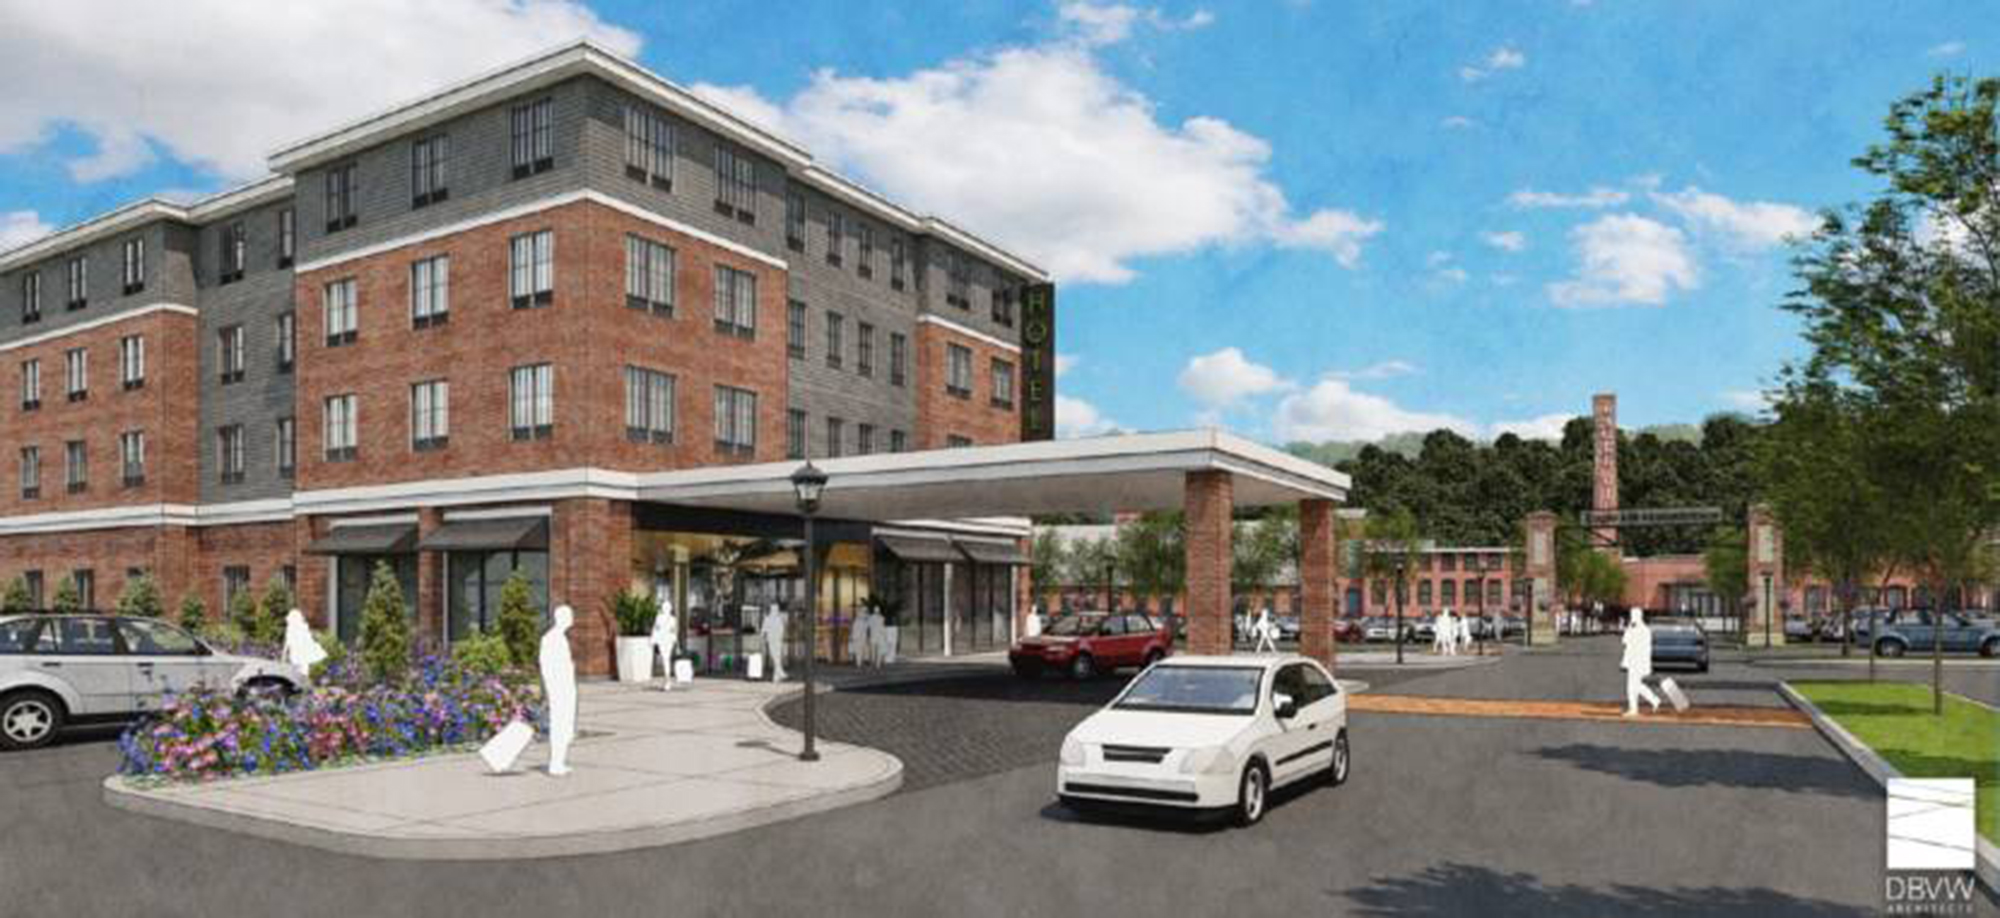 A conceptual rendering offers a view of the proposed hotel on the south side of West Center Street in Lee. The illustration does not represent a final design.  IMAGE PROVIDED BY EAGLE MILL REDEVELOPMENT LLC